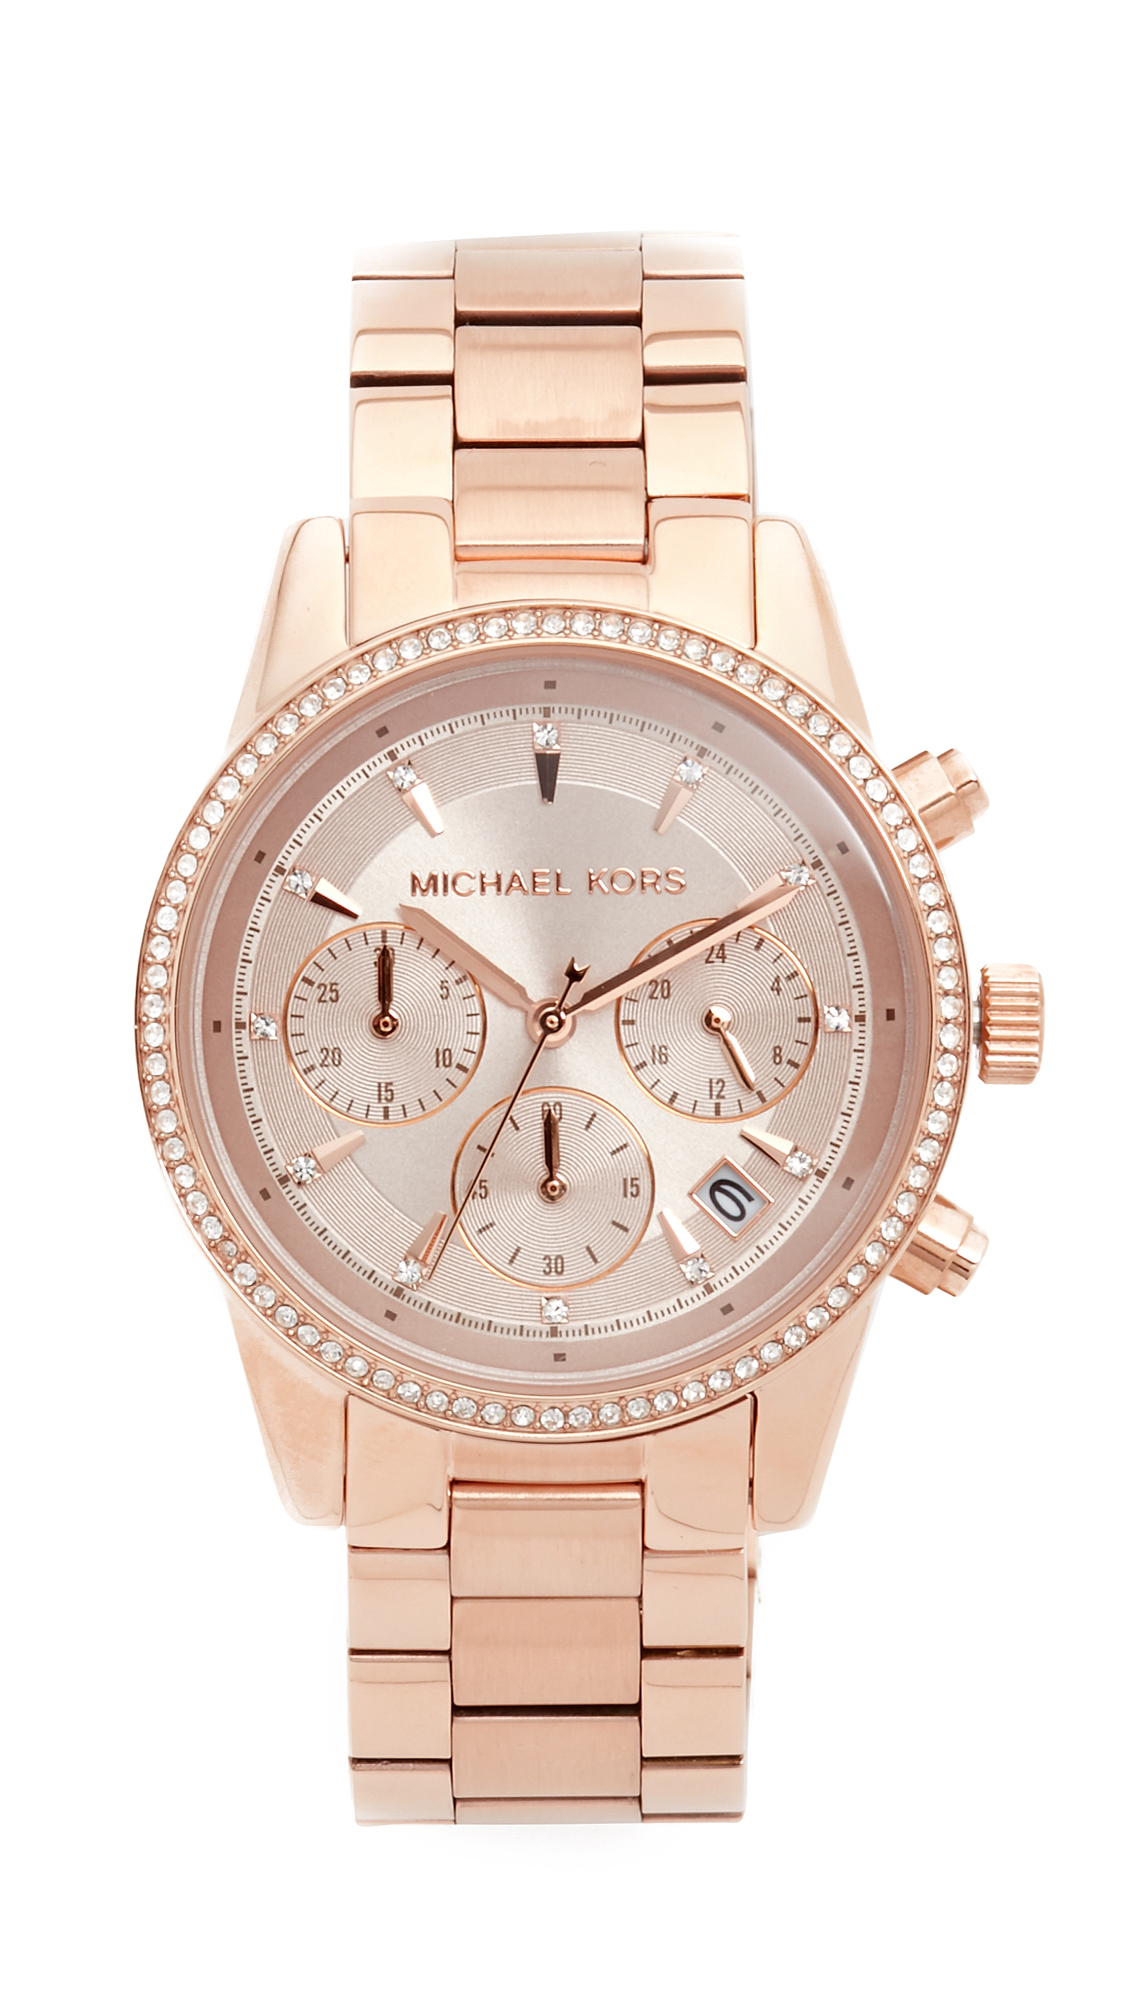 michael kors female michael kors ritz watch rose gold